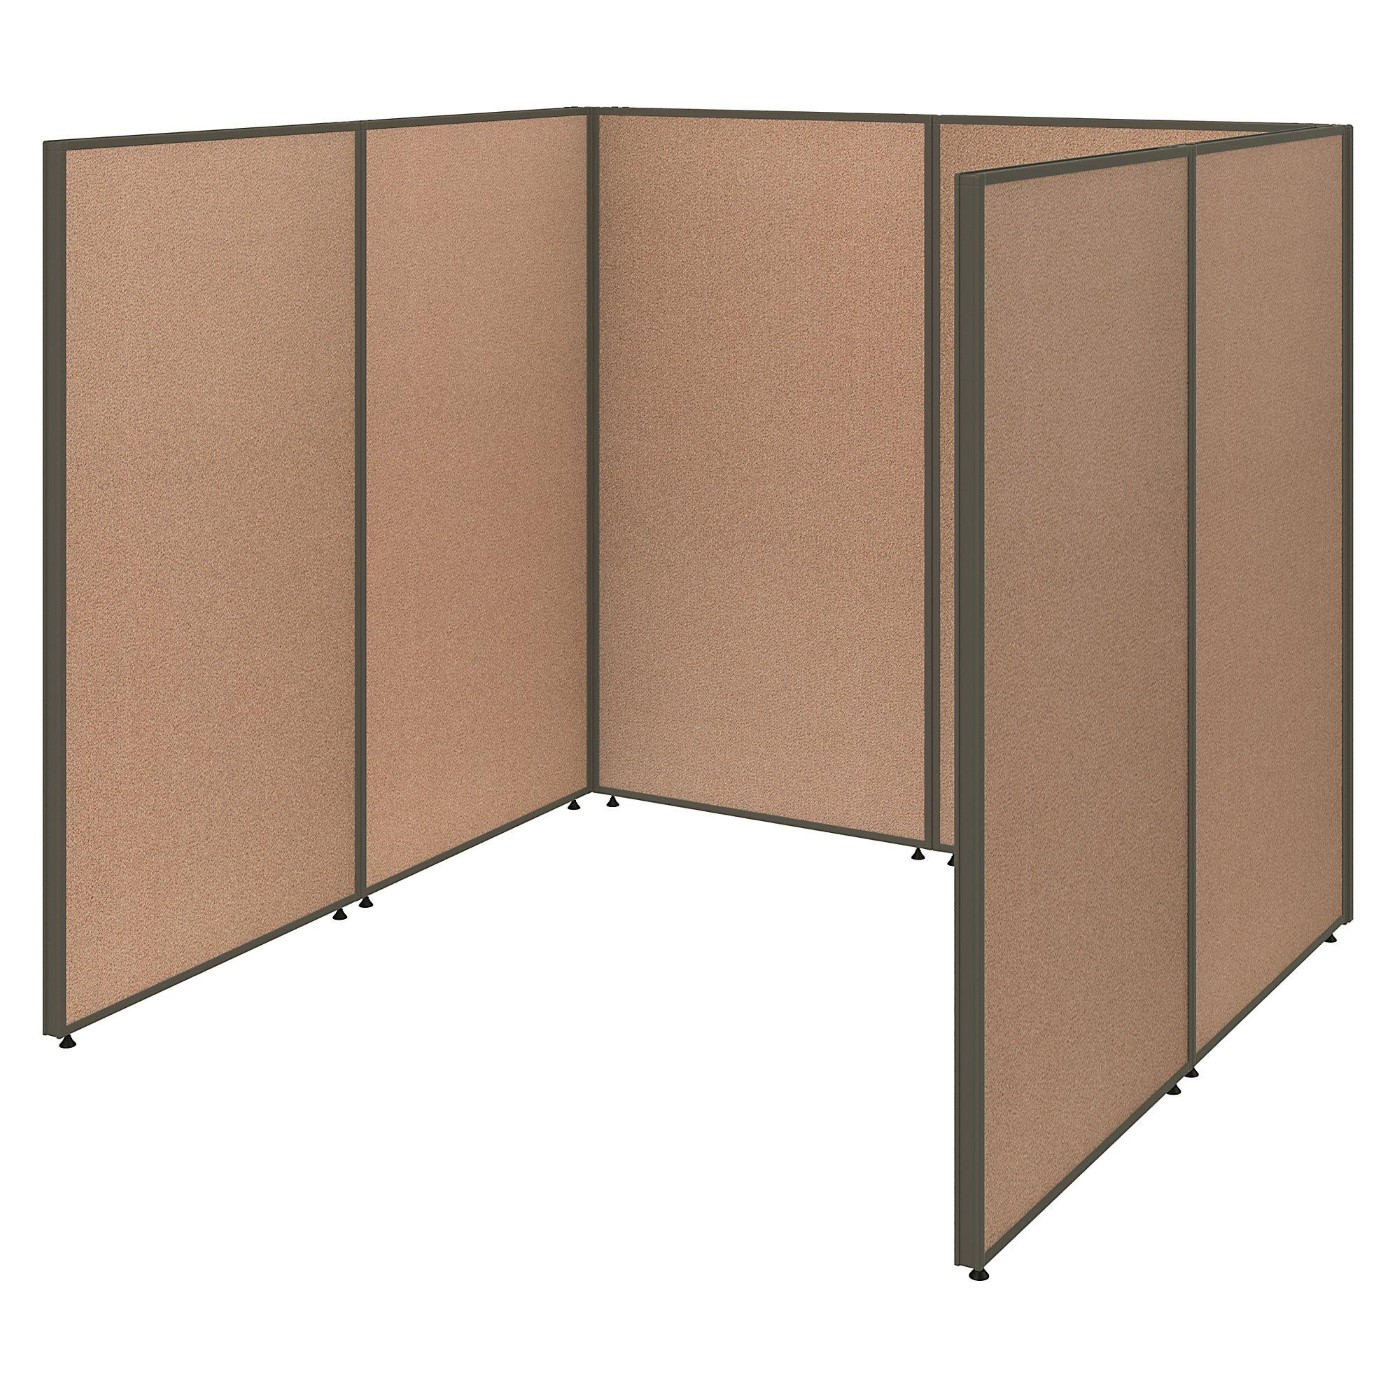 <font color=#c60><b>BUSH BUSINESS FURNITURE PROPANELS SINGLE OPEN CUBICLE OFFICE. FREE SHIPPING</font></b>